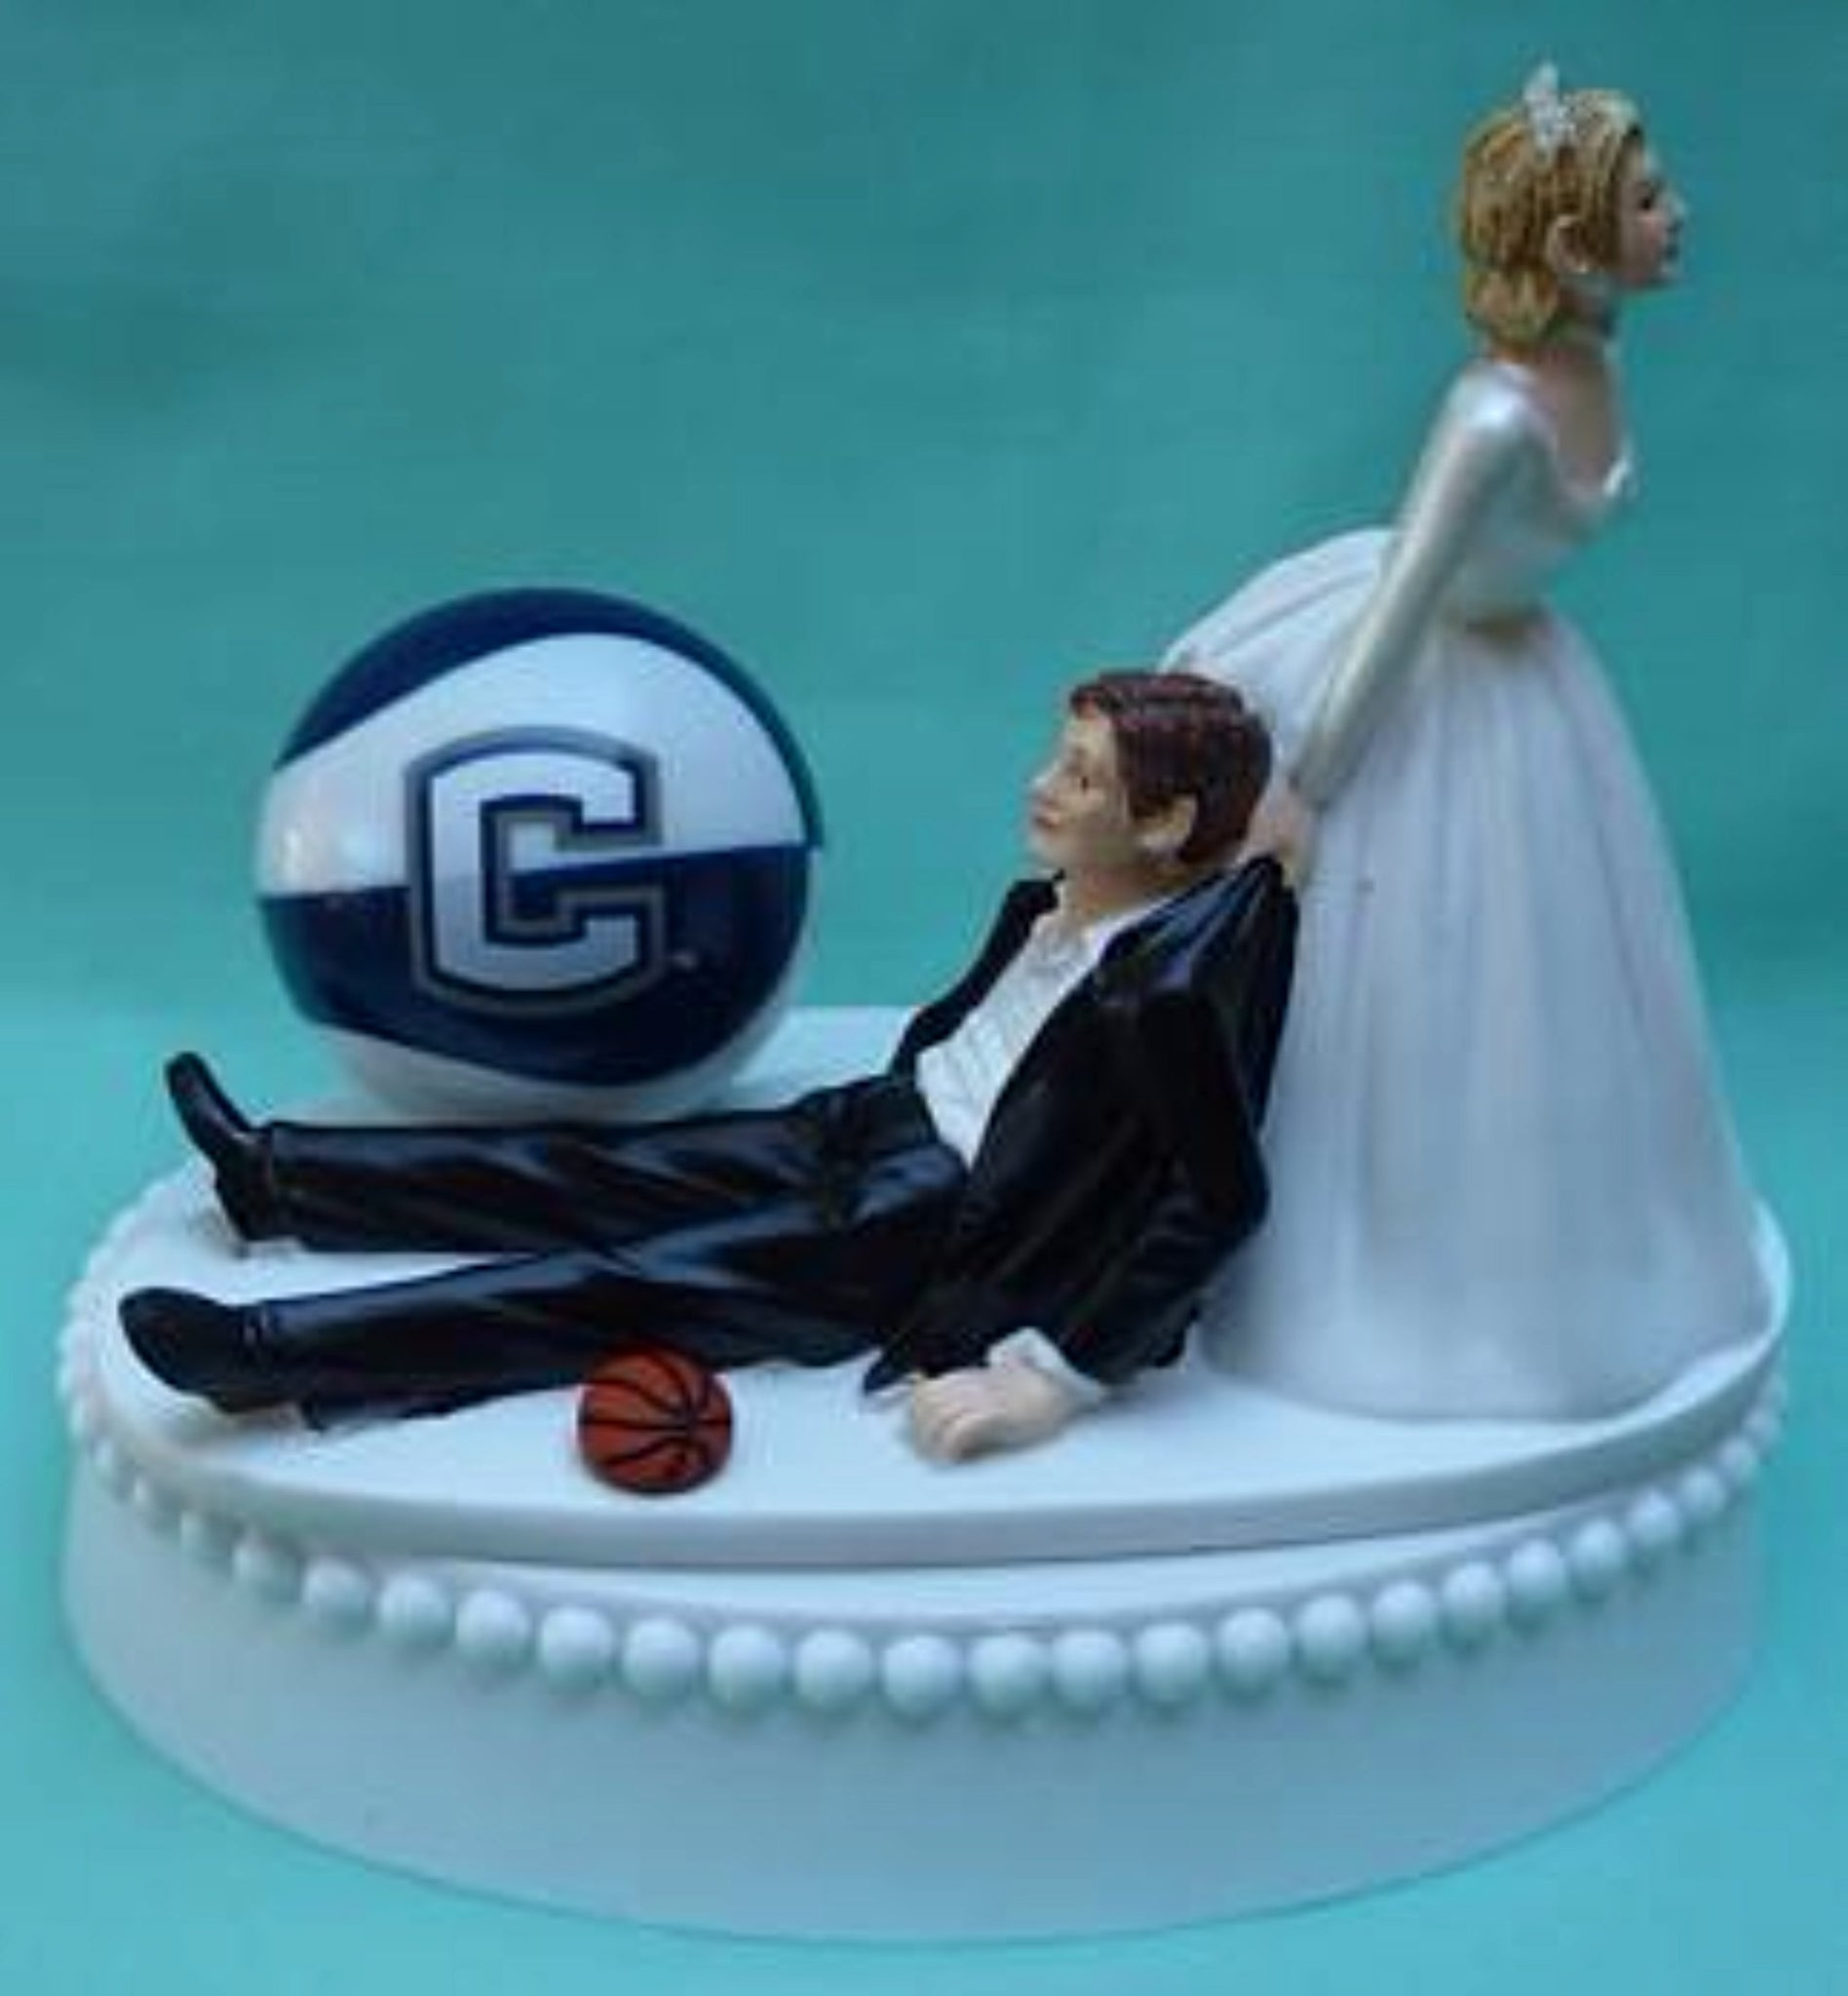 UConn basketball University of Connecticut wedding cake topper Huskies funny sports bride groom humorous Fun Wedding Things